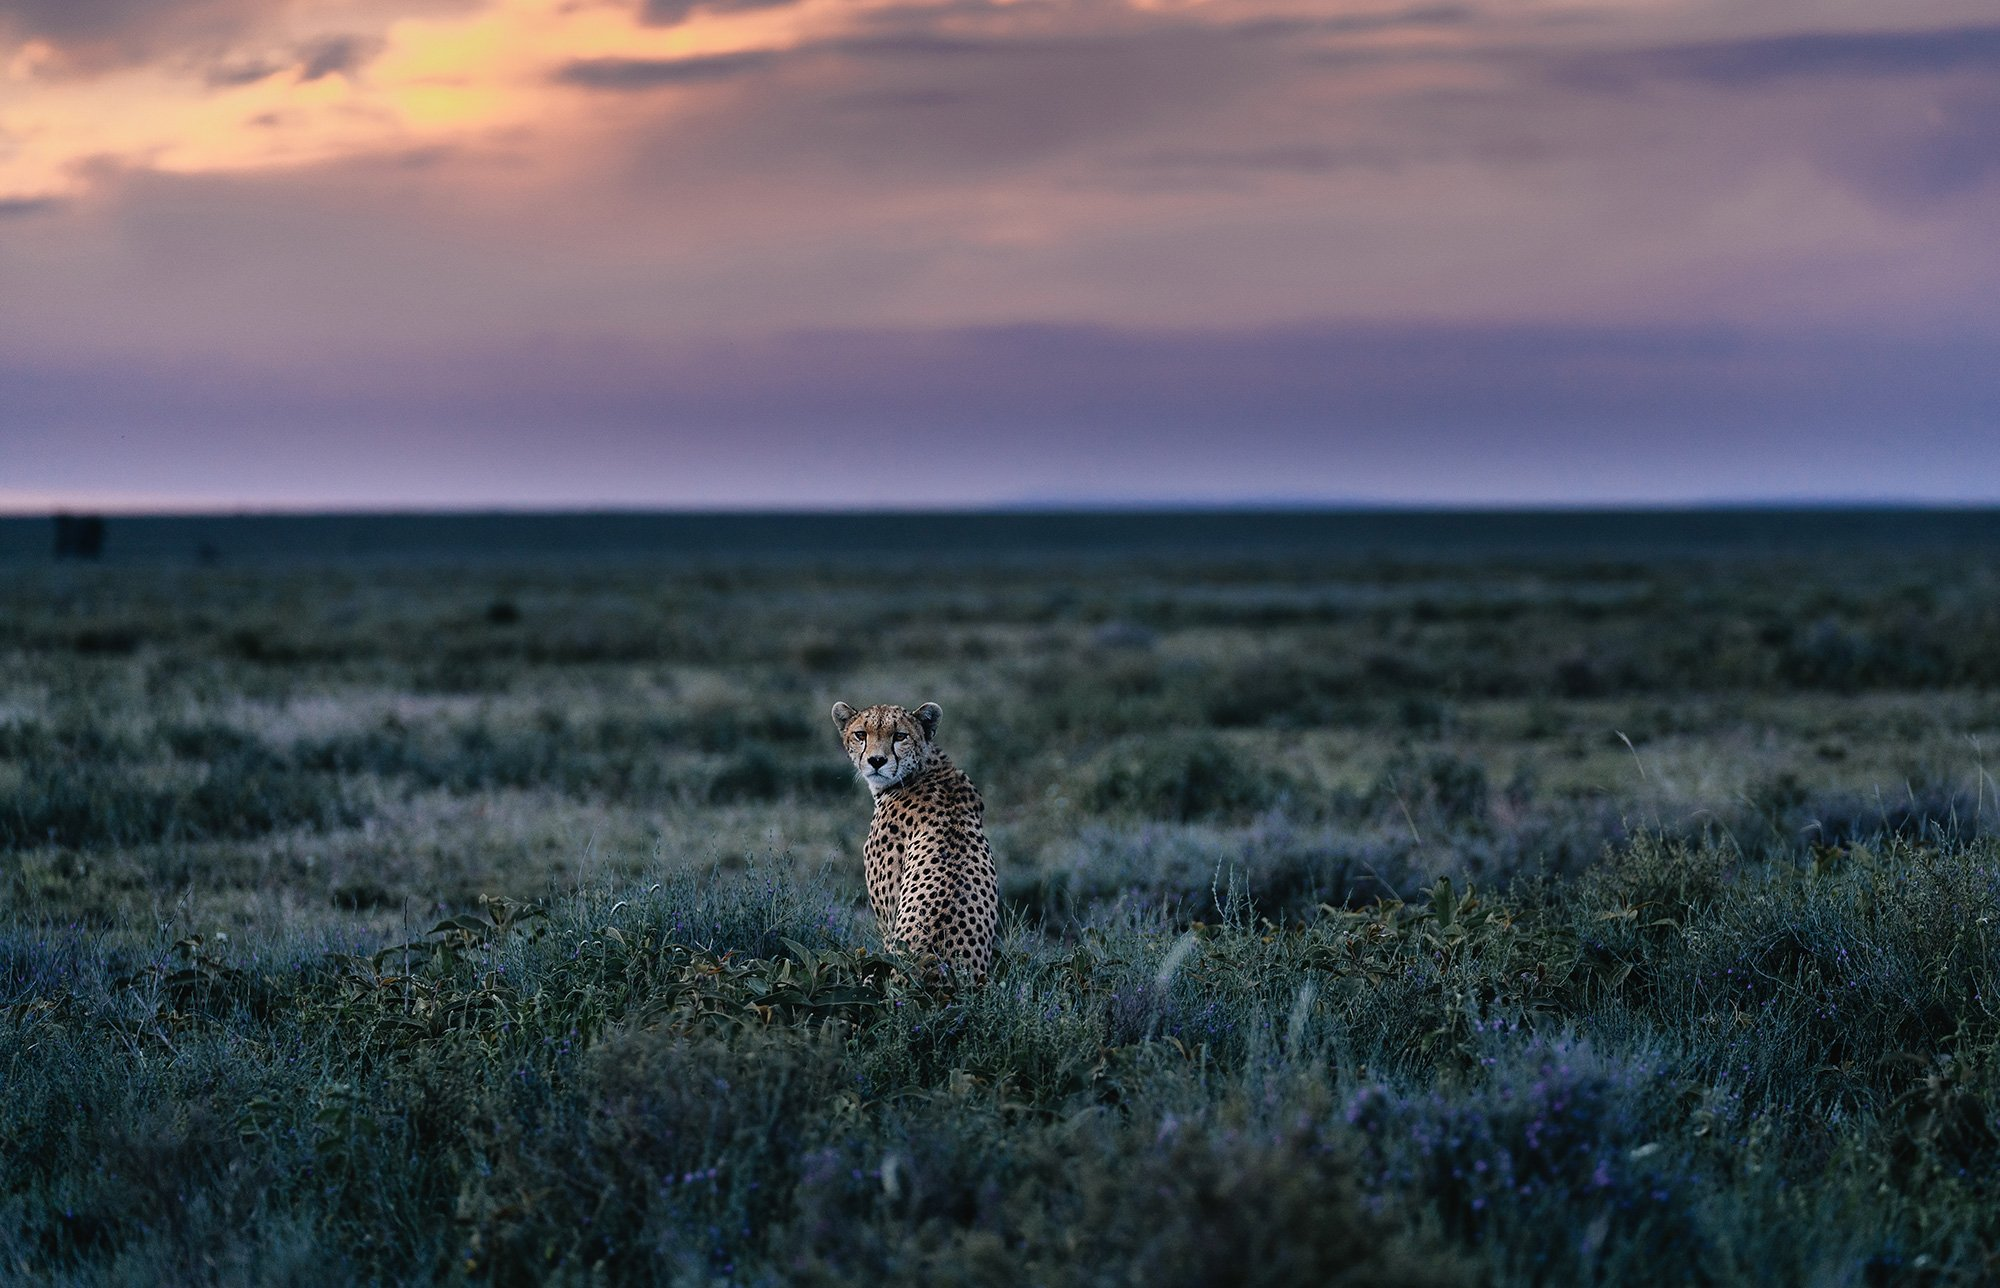 chris-schmid-sony-alpha-7RII-lone-cheetah-stares-back-at-the-camera-1